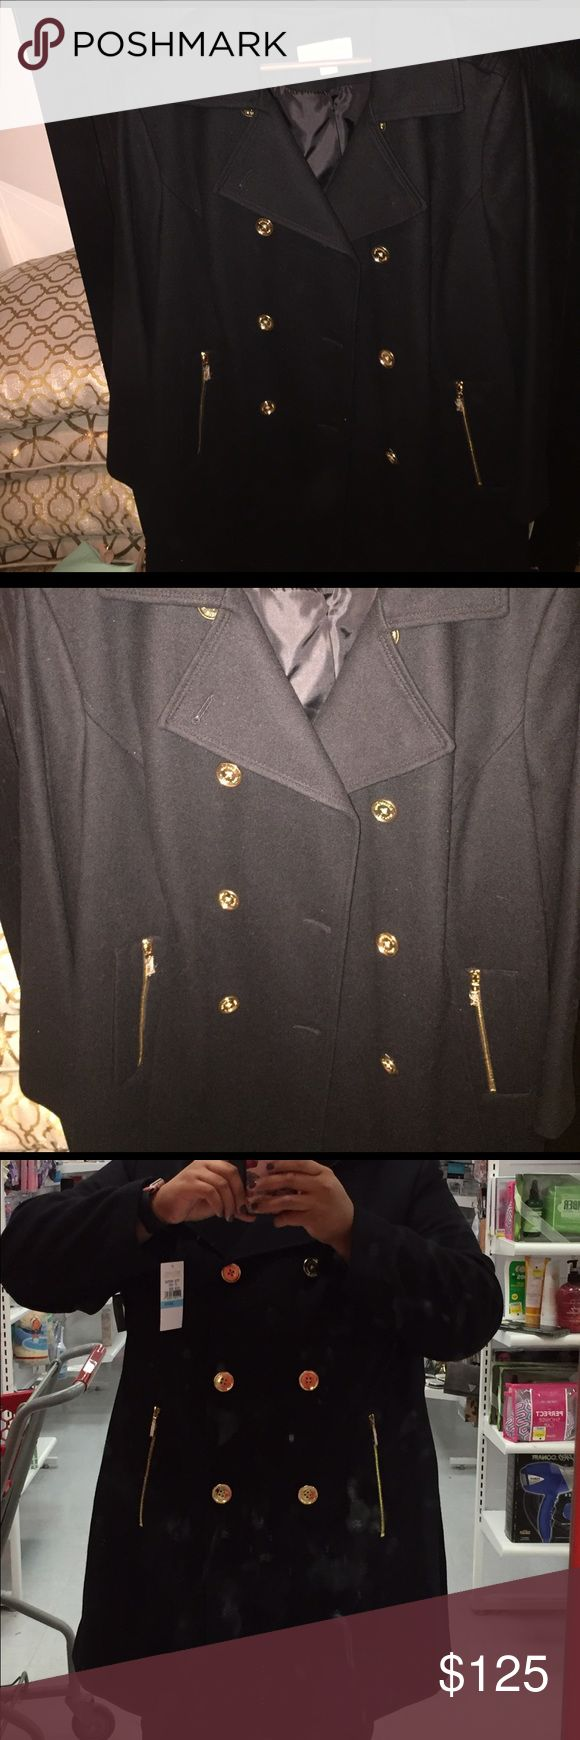 Woman's Michael Kors black wool jacket 20X NWT NWT Woman's Michael Kors black wool jacket 20X with gold buttons Michael Kors embedded Michael Kors Jackets & Coats Pea Coats